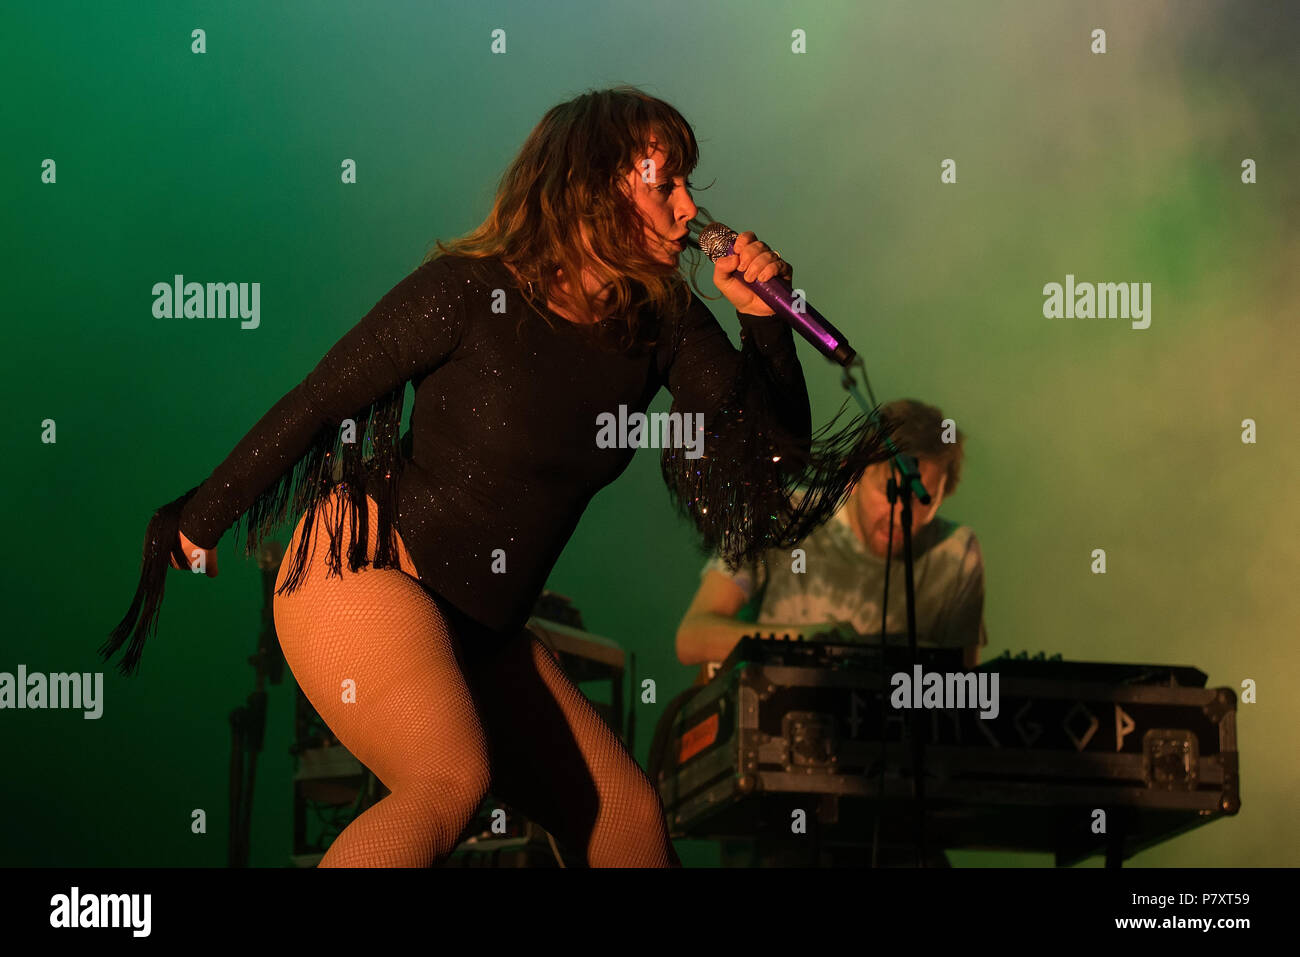 BARCELONA - MAY 31: Sylvan Esso (band) perform in concert at Primavera Sound Festival on May 31, 2018 in Barcelona, Spain. - Stock Image